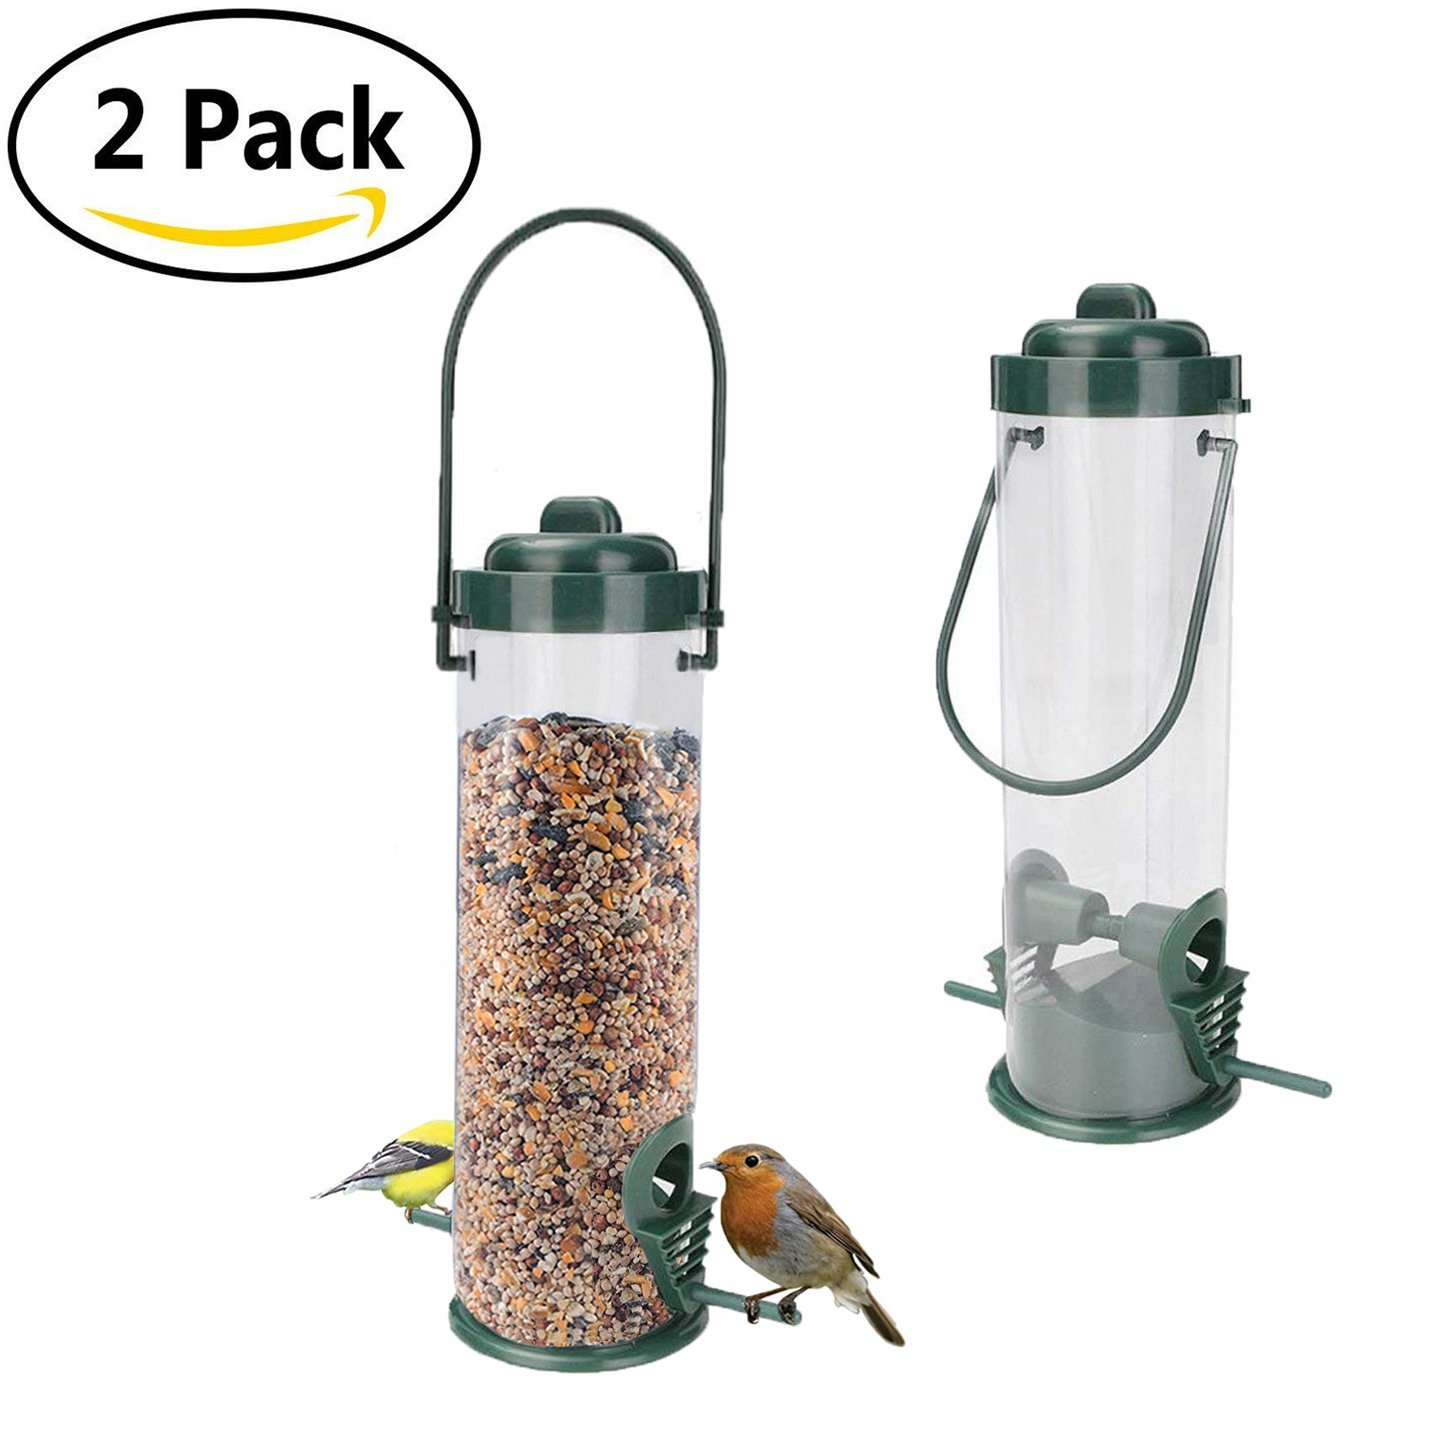 Originalidad Bird Feeder – Classic Tube Hanging Feeders for Finches Bird Seed and More, Weatherproof, Premium Plastic with Hanger, Great for Attracting Birds Outdoors, Backyard, Garden (2 Pack)